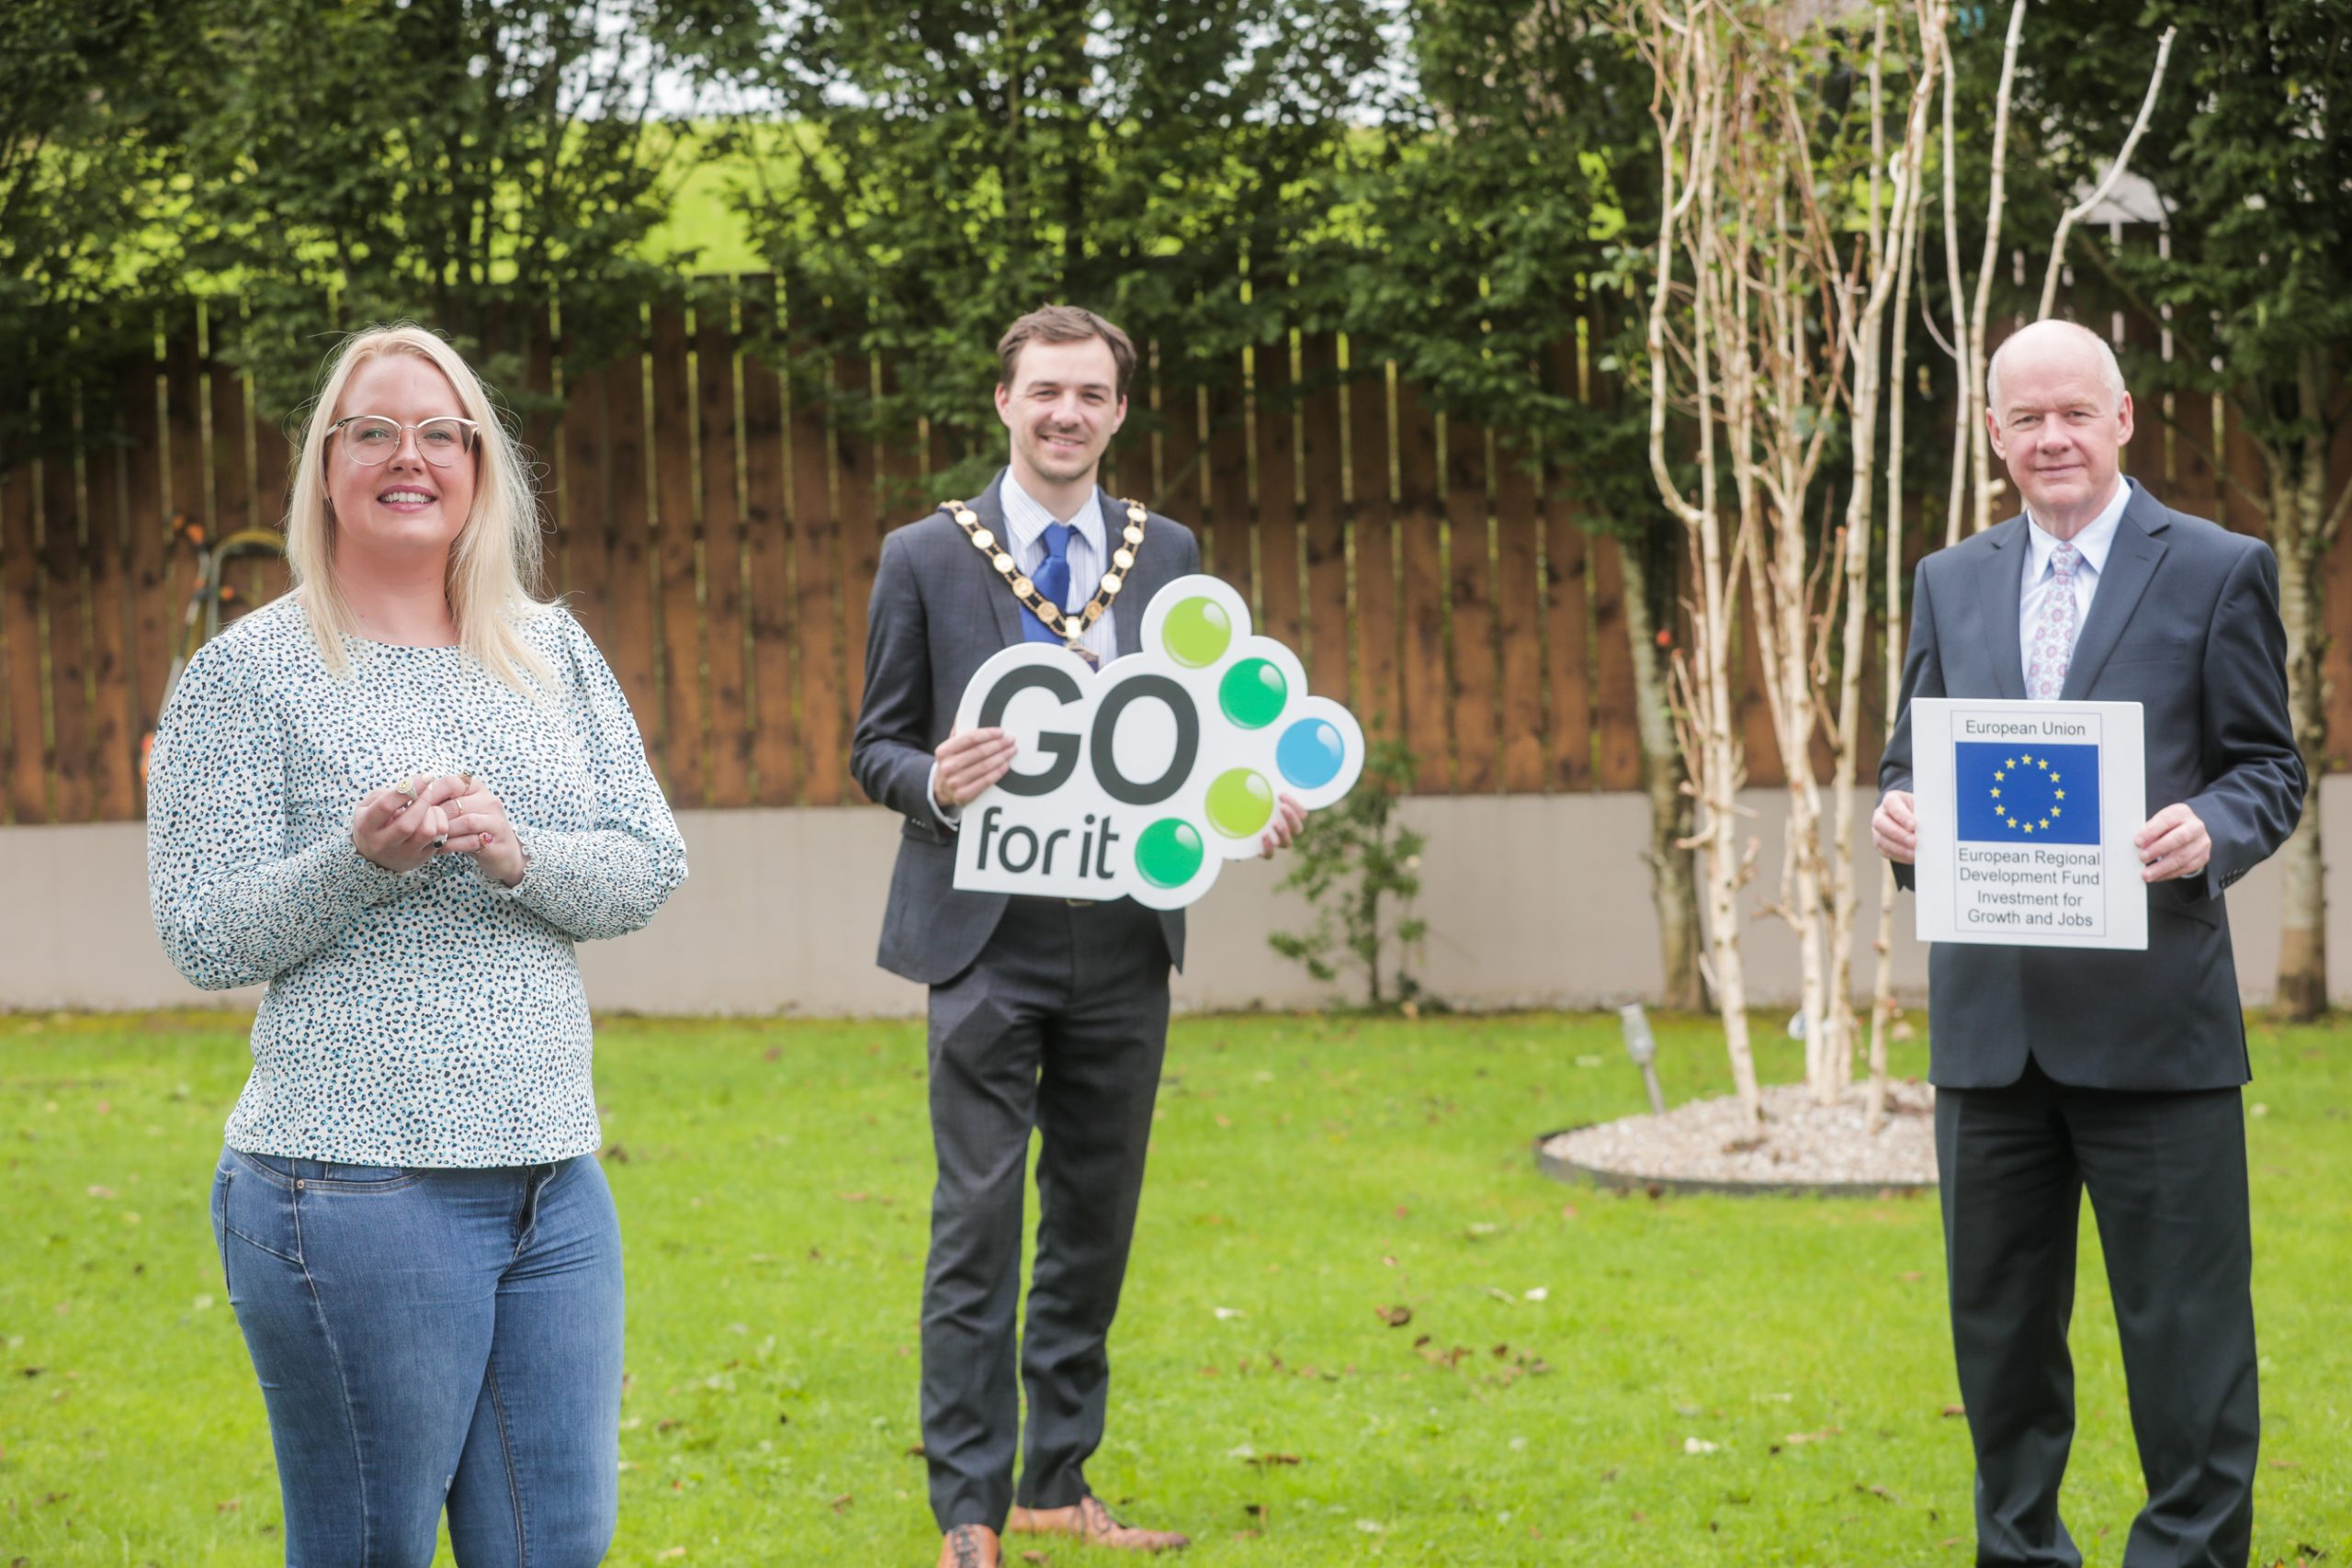 All that glitters is gold for new local business - The Fermanagh Herald